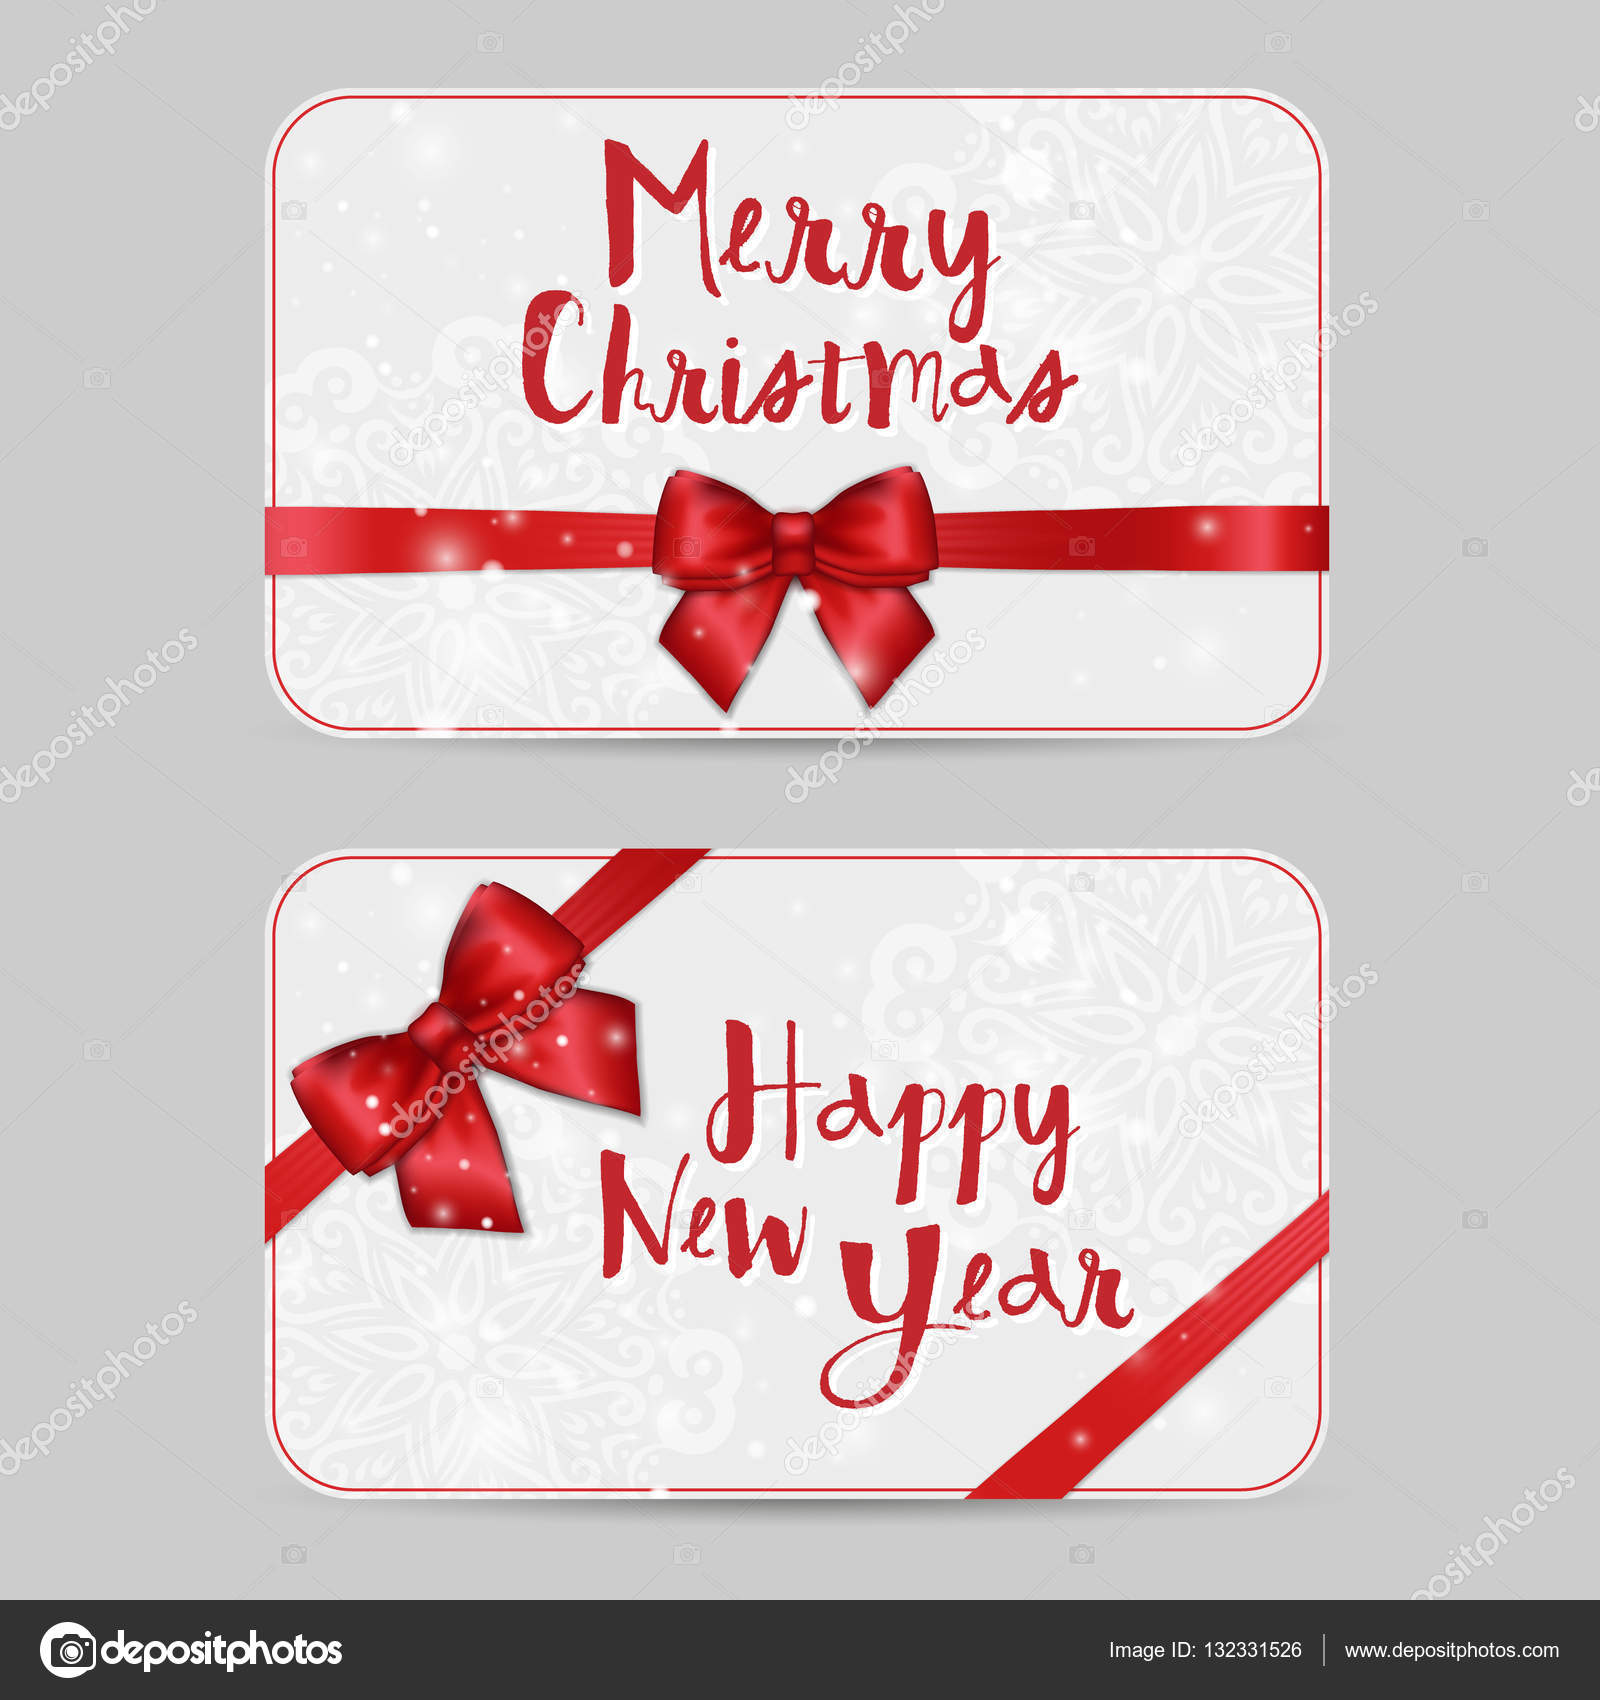 christmas or ntal card templates shiny holiday red satin christmas or ntal card templates shiny holiday red satin ribbon bow vector new year template for vouchers gift cards stock illustration